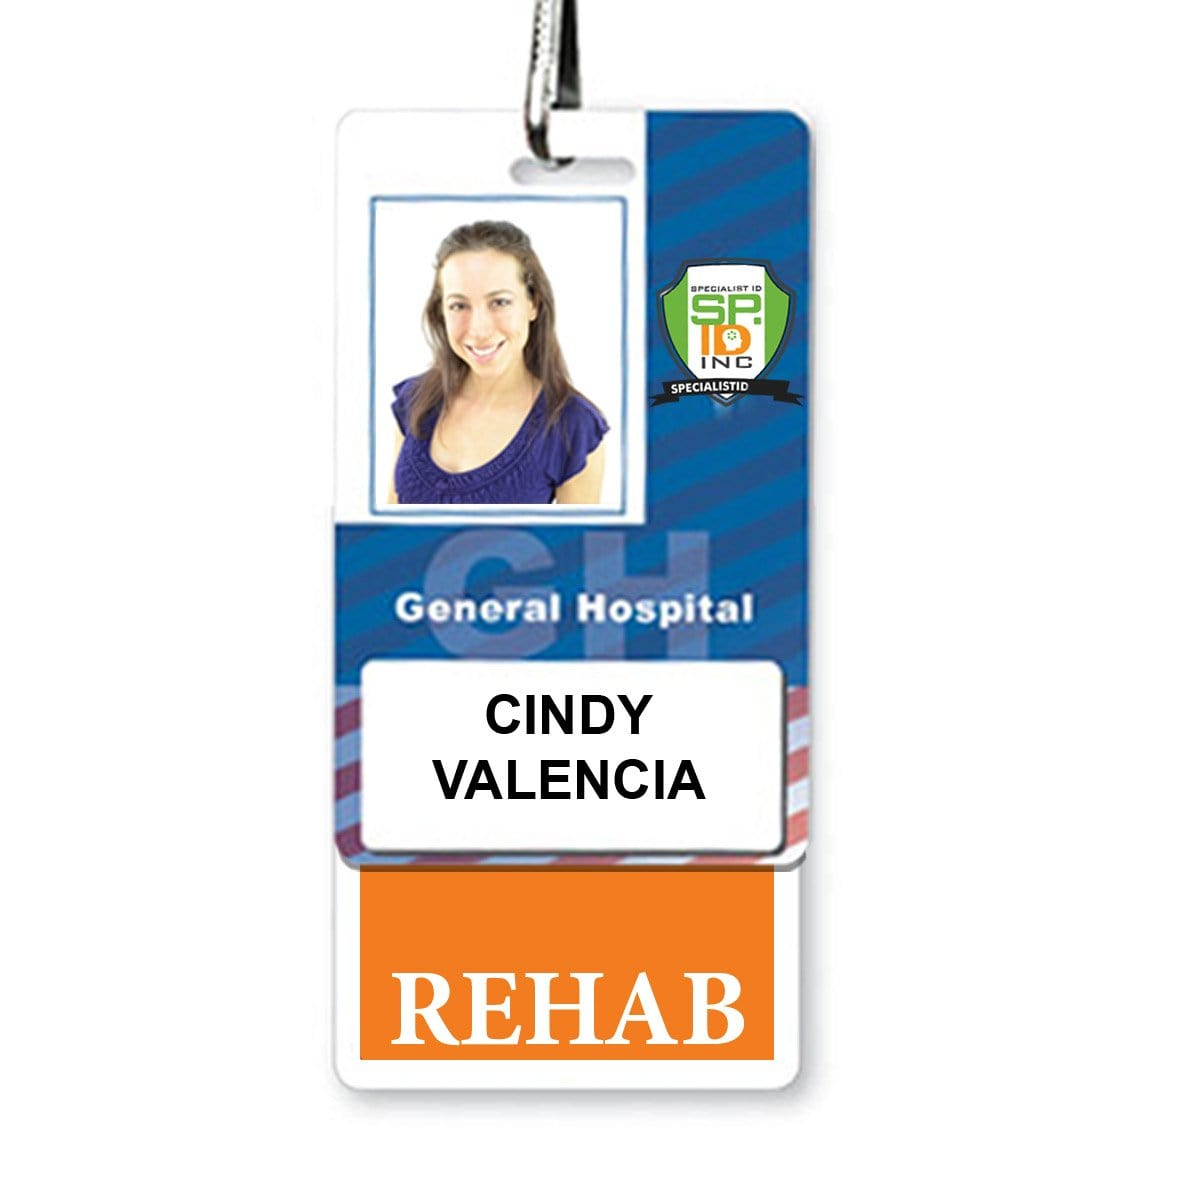 REHAB Vertical Badge Buddy with ORANGE Border